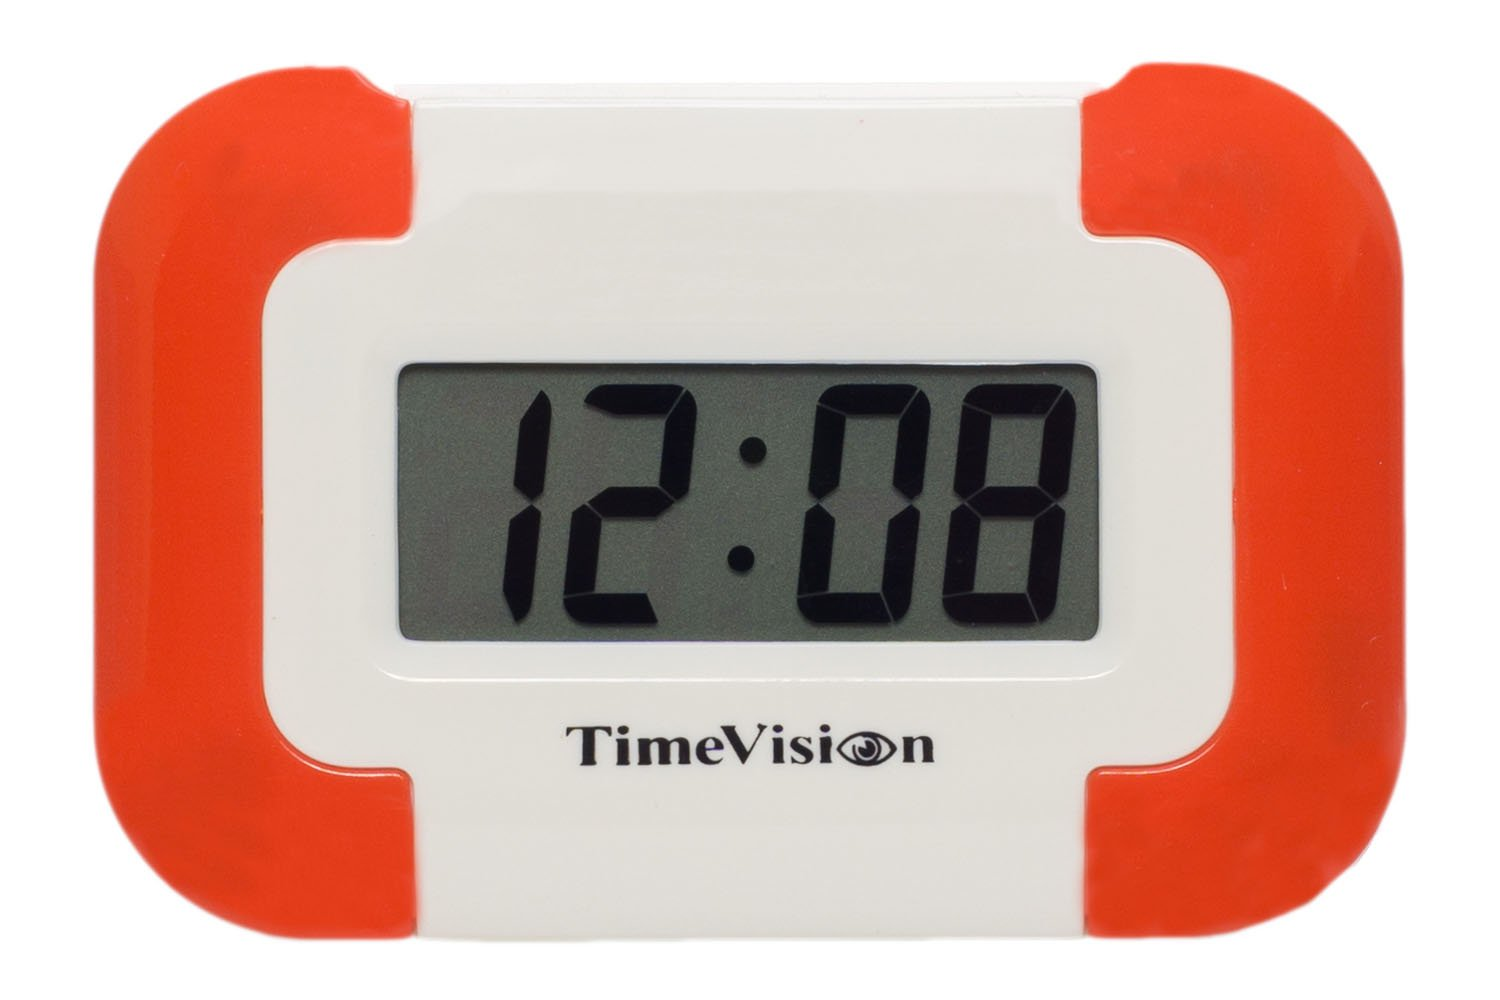 ShakeAwake Vibrating Alarm Clock - ATC0833 Time Vision